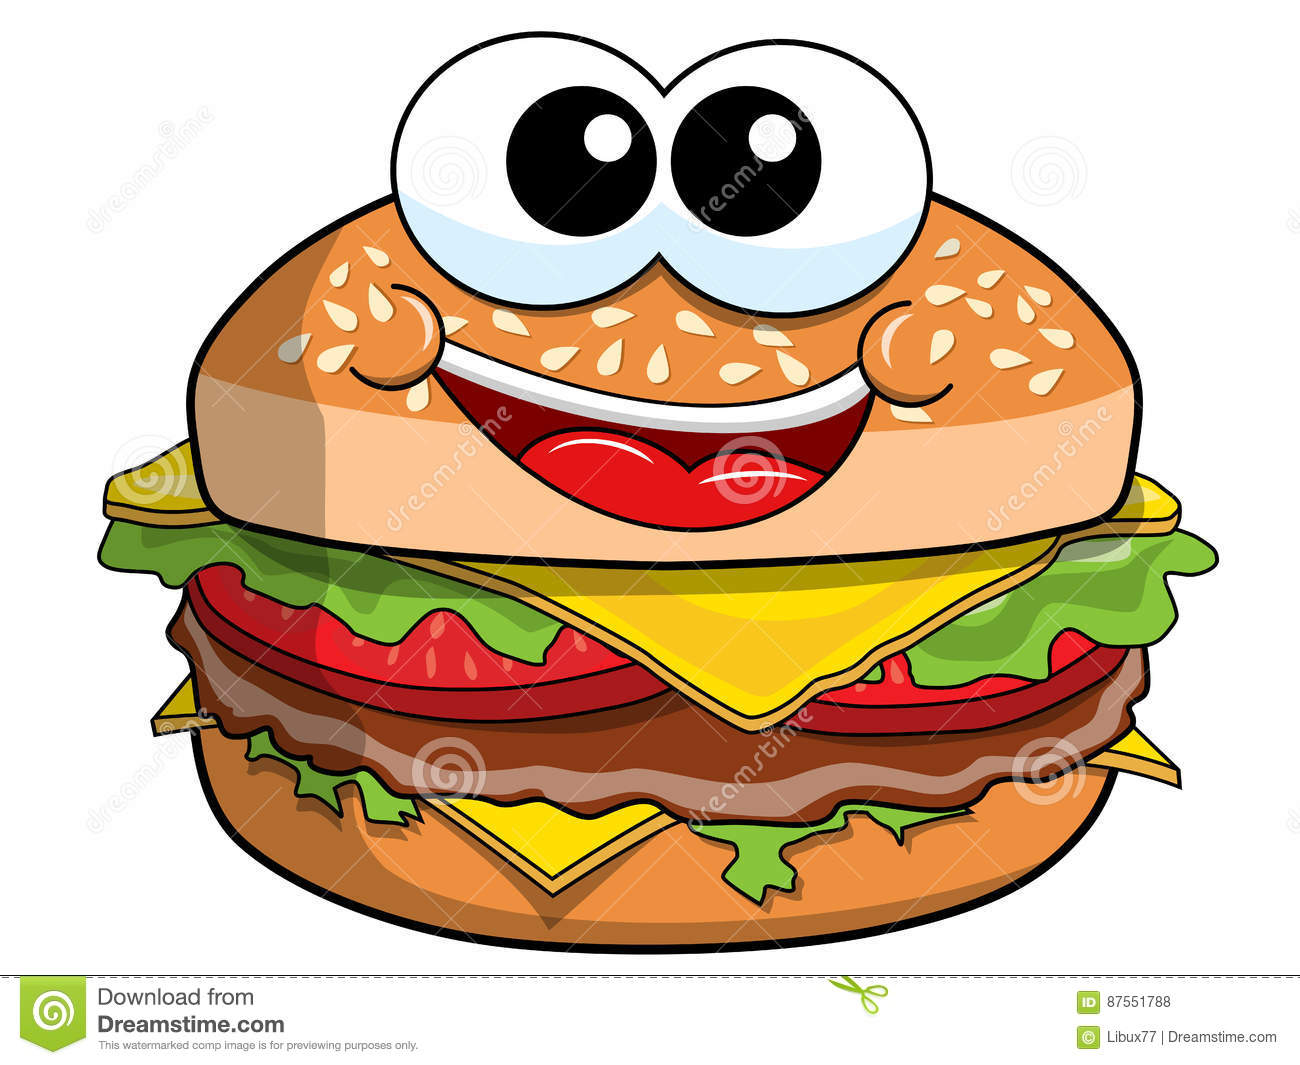 Hamburger Cartoon on Plain Border